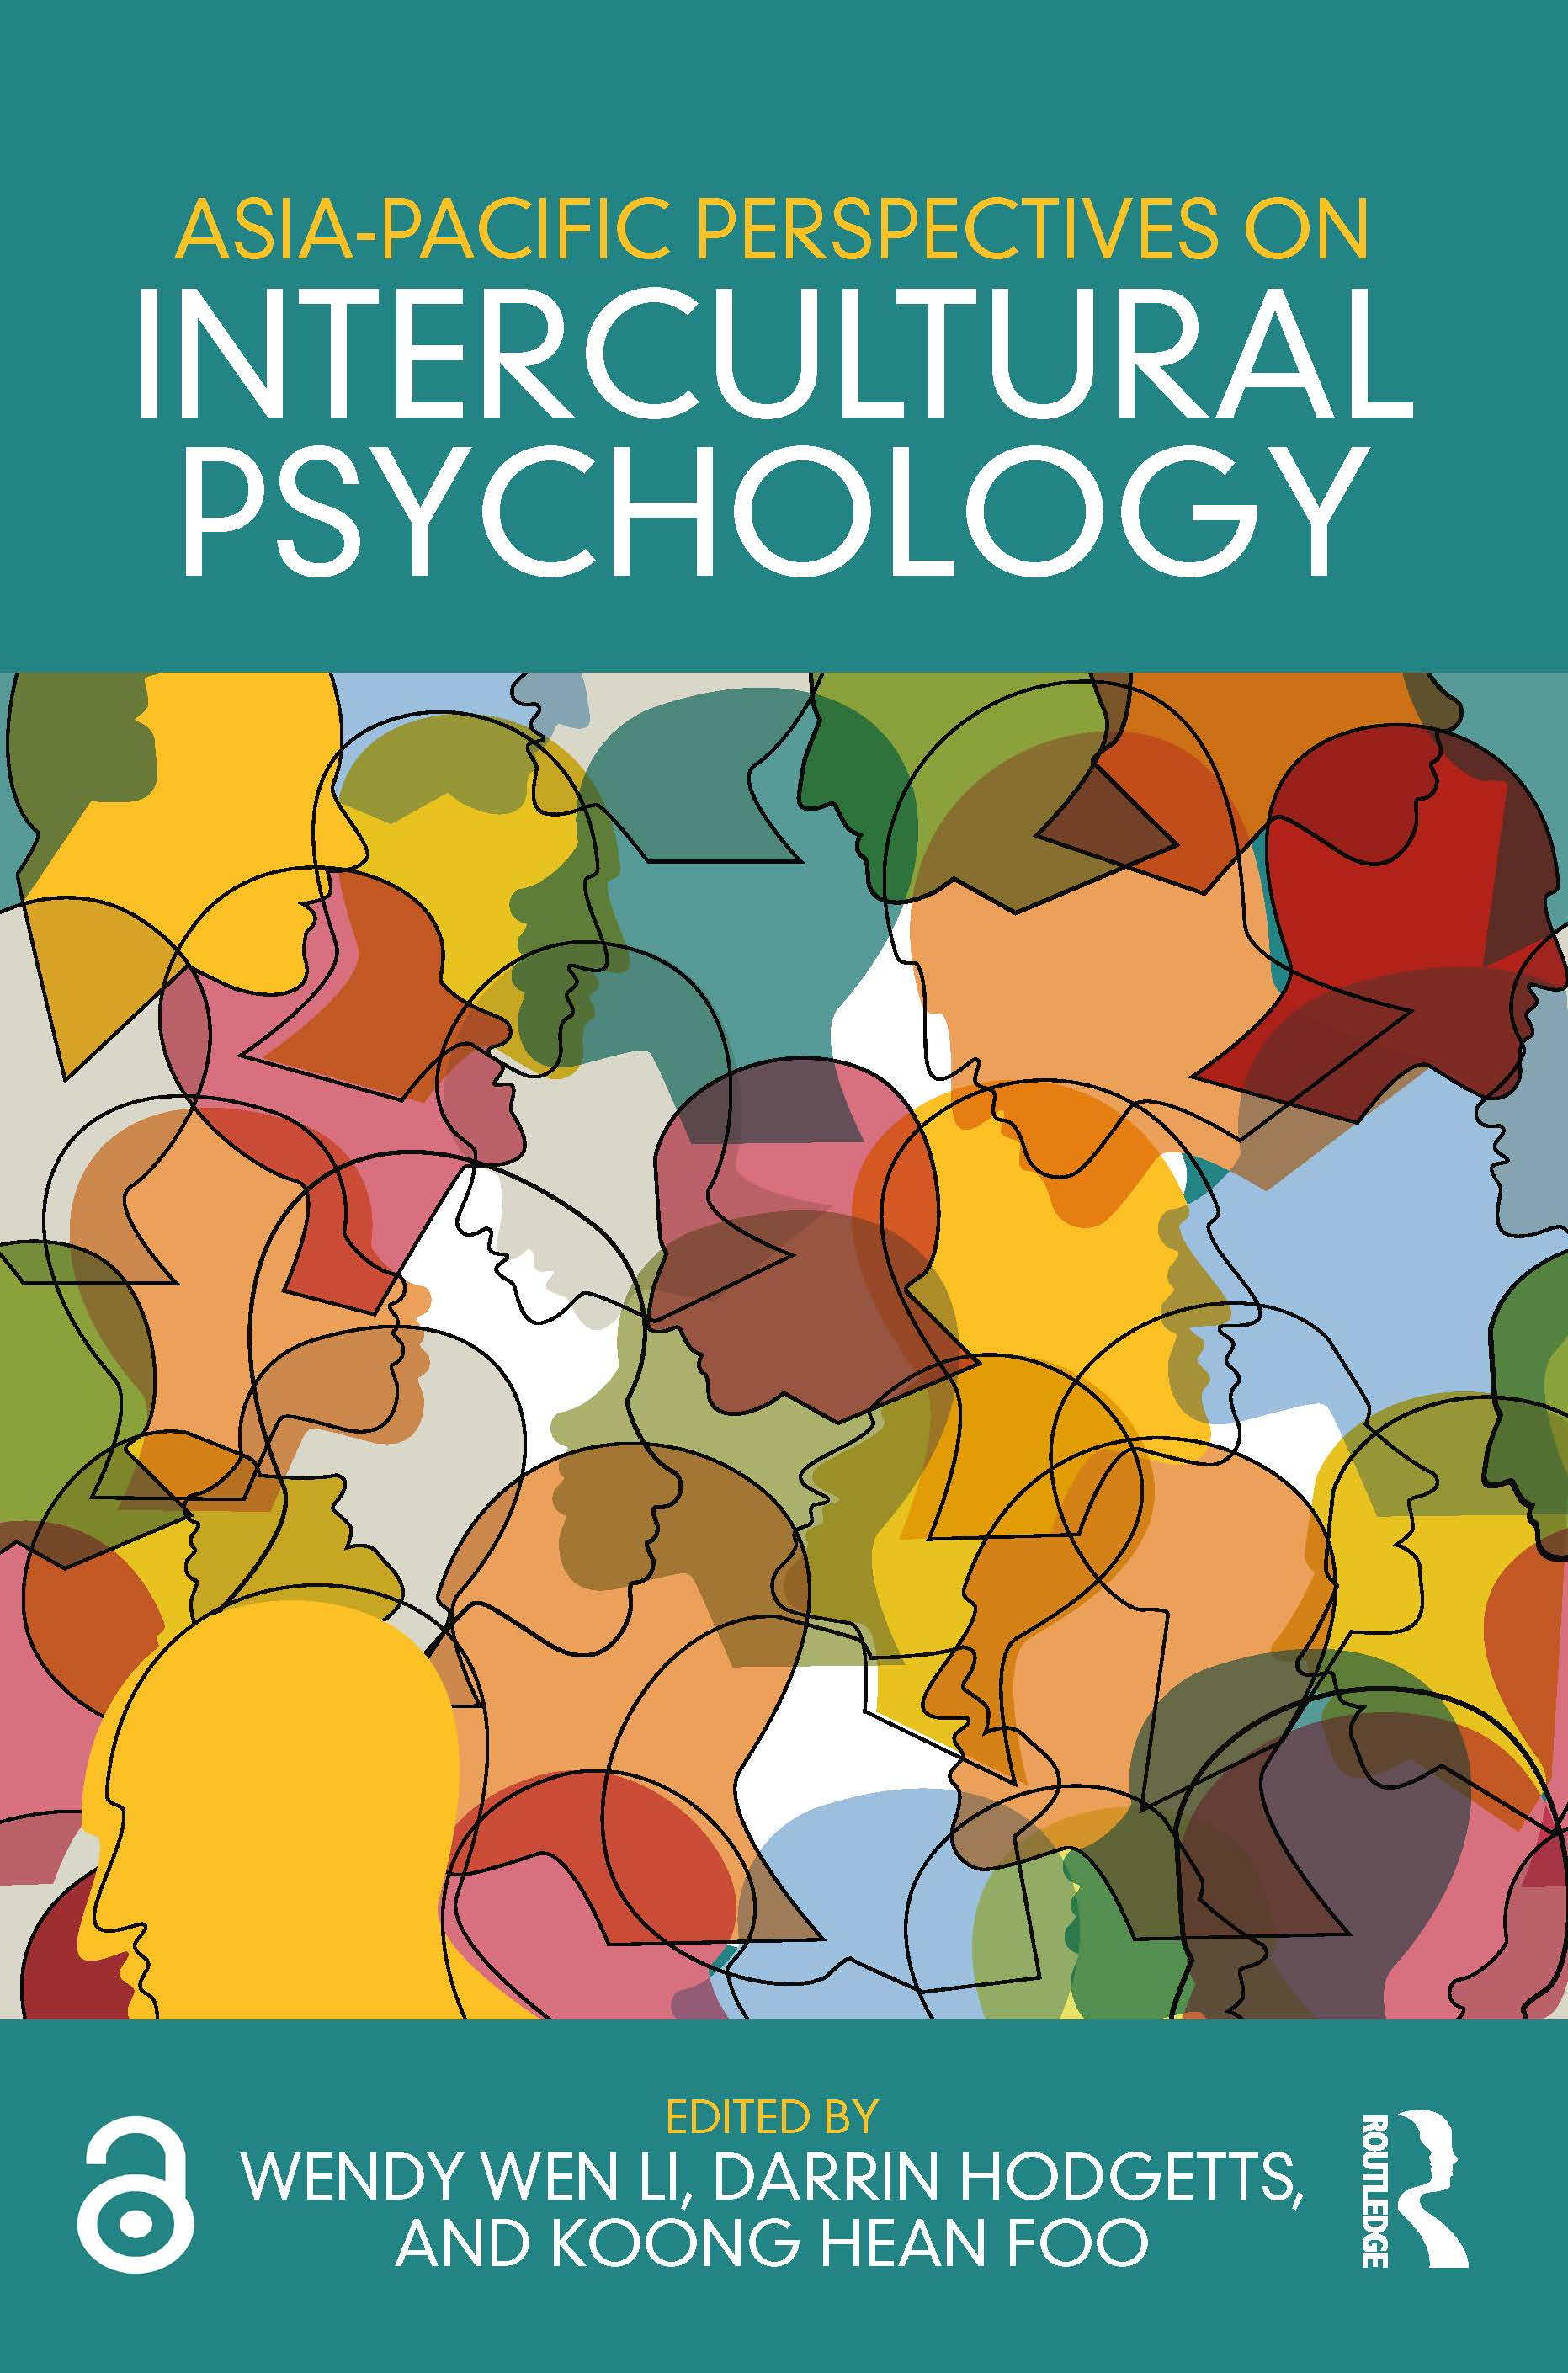 Asia-Pacific Perspectives on Intercultural Psychology